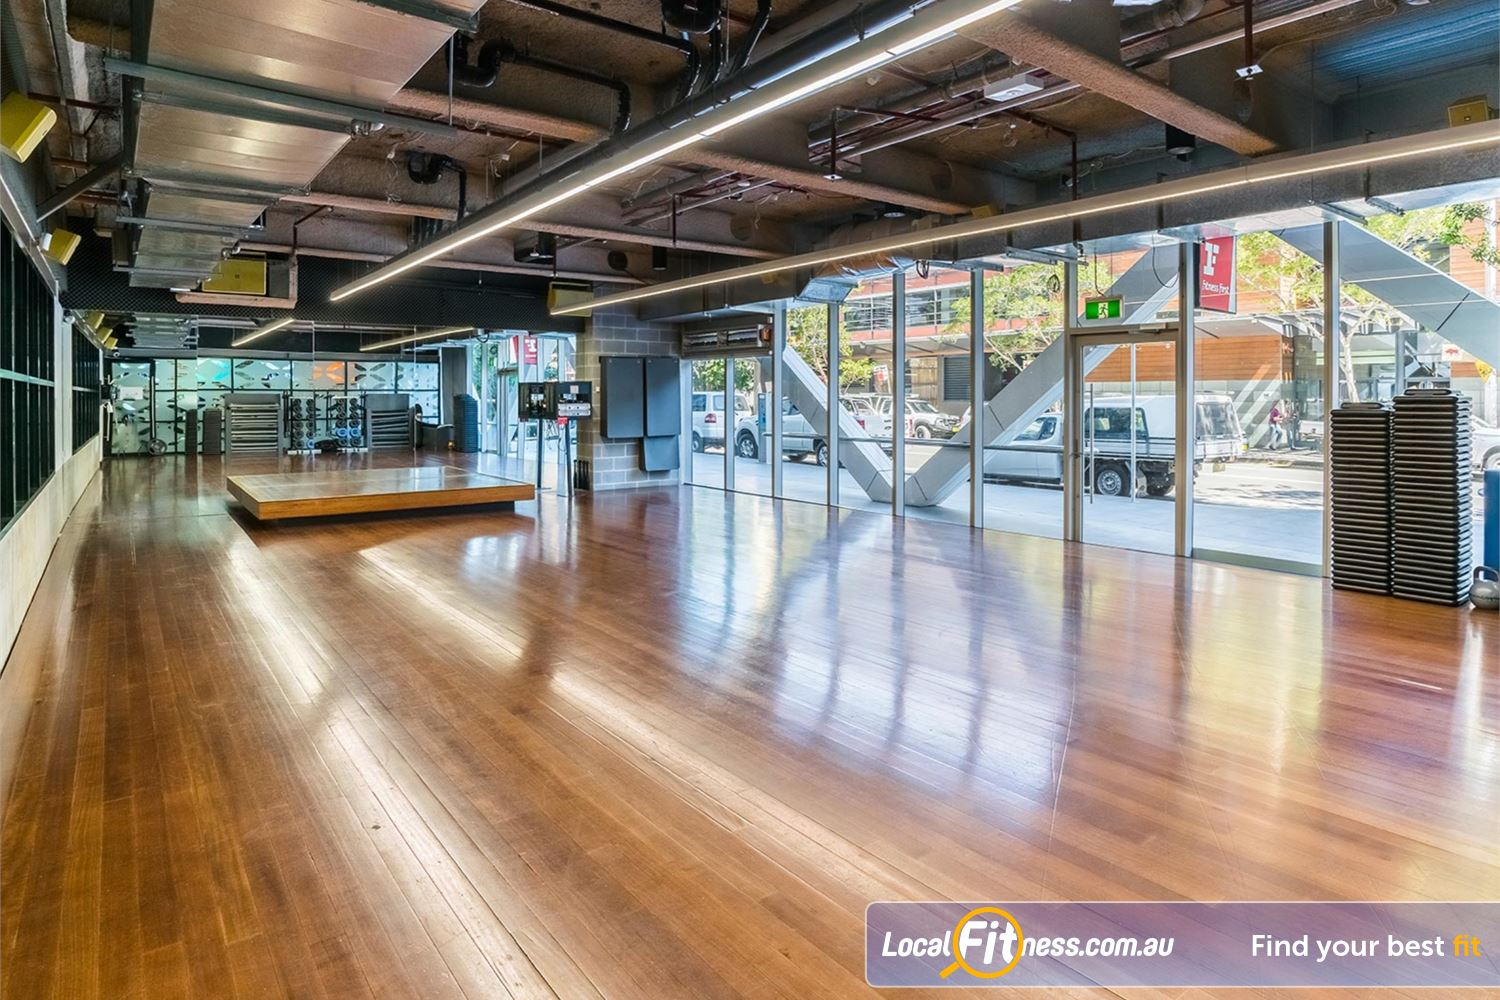 Fitness First Platinum Shelley St Near Strawberry Hills Over 25 classes per week inc. Yoga, HIIT, Pilates, Les Mills and more.